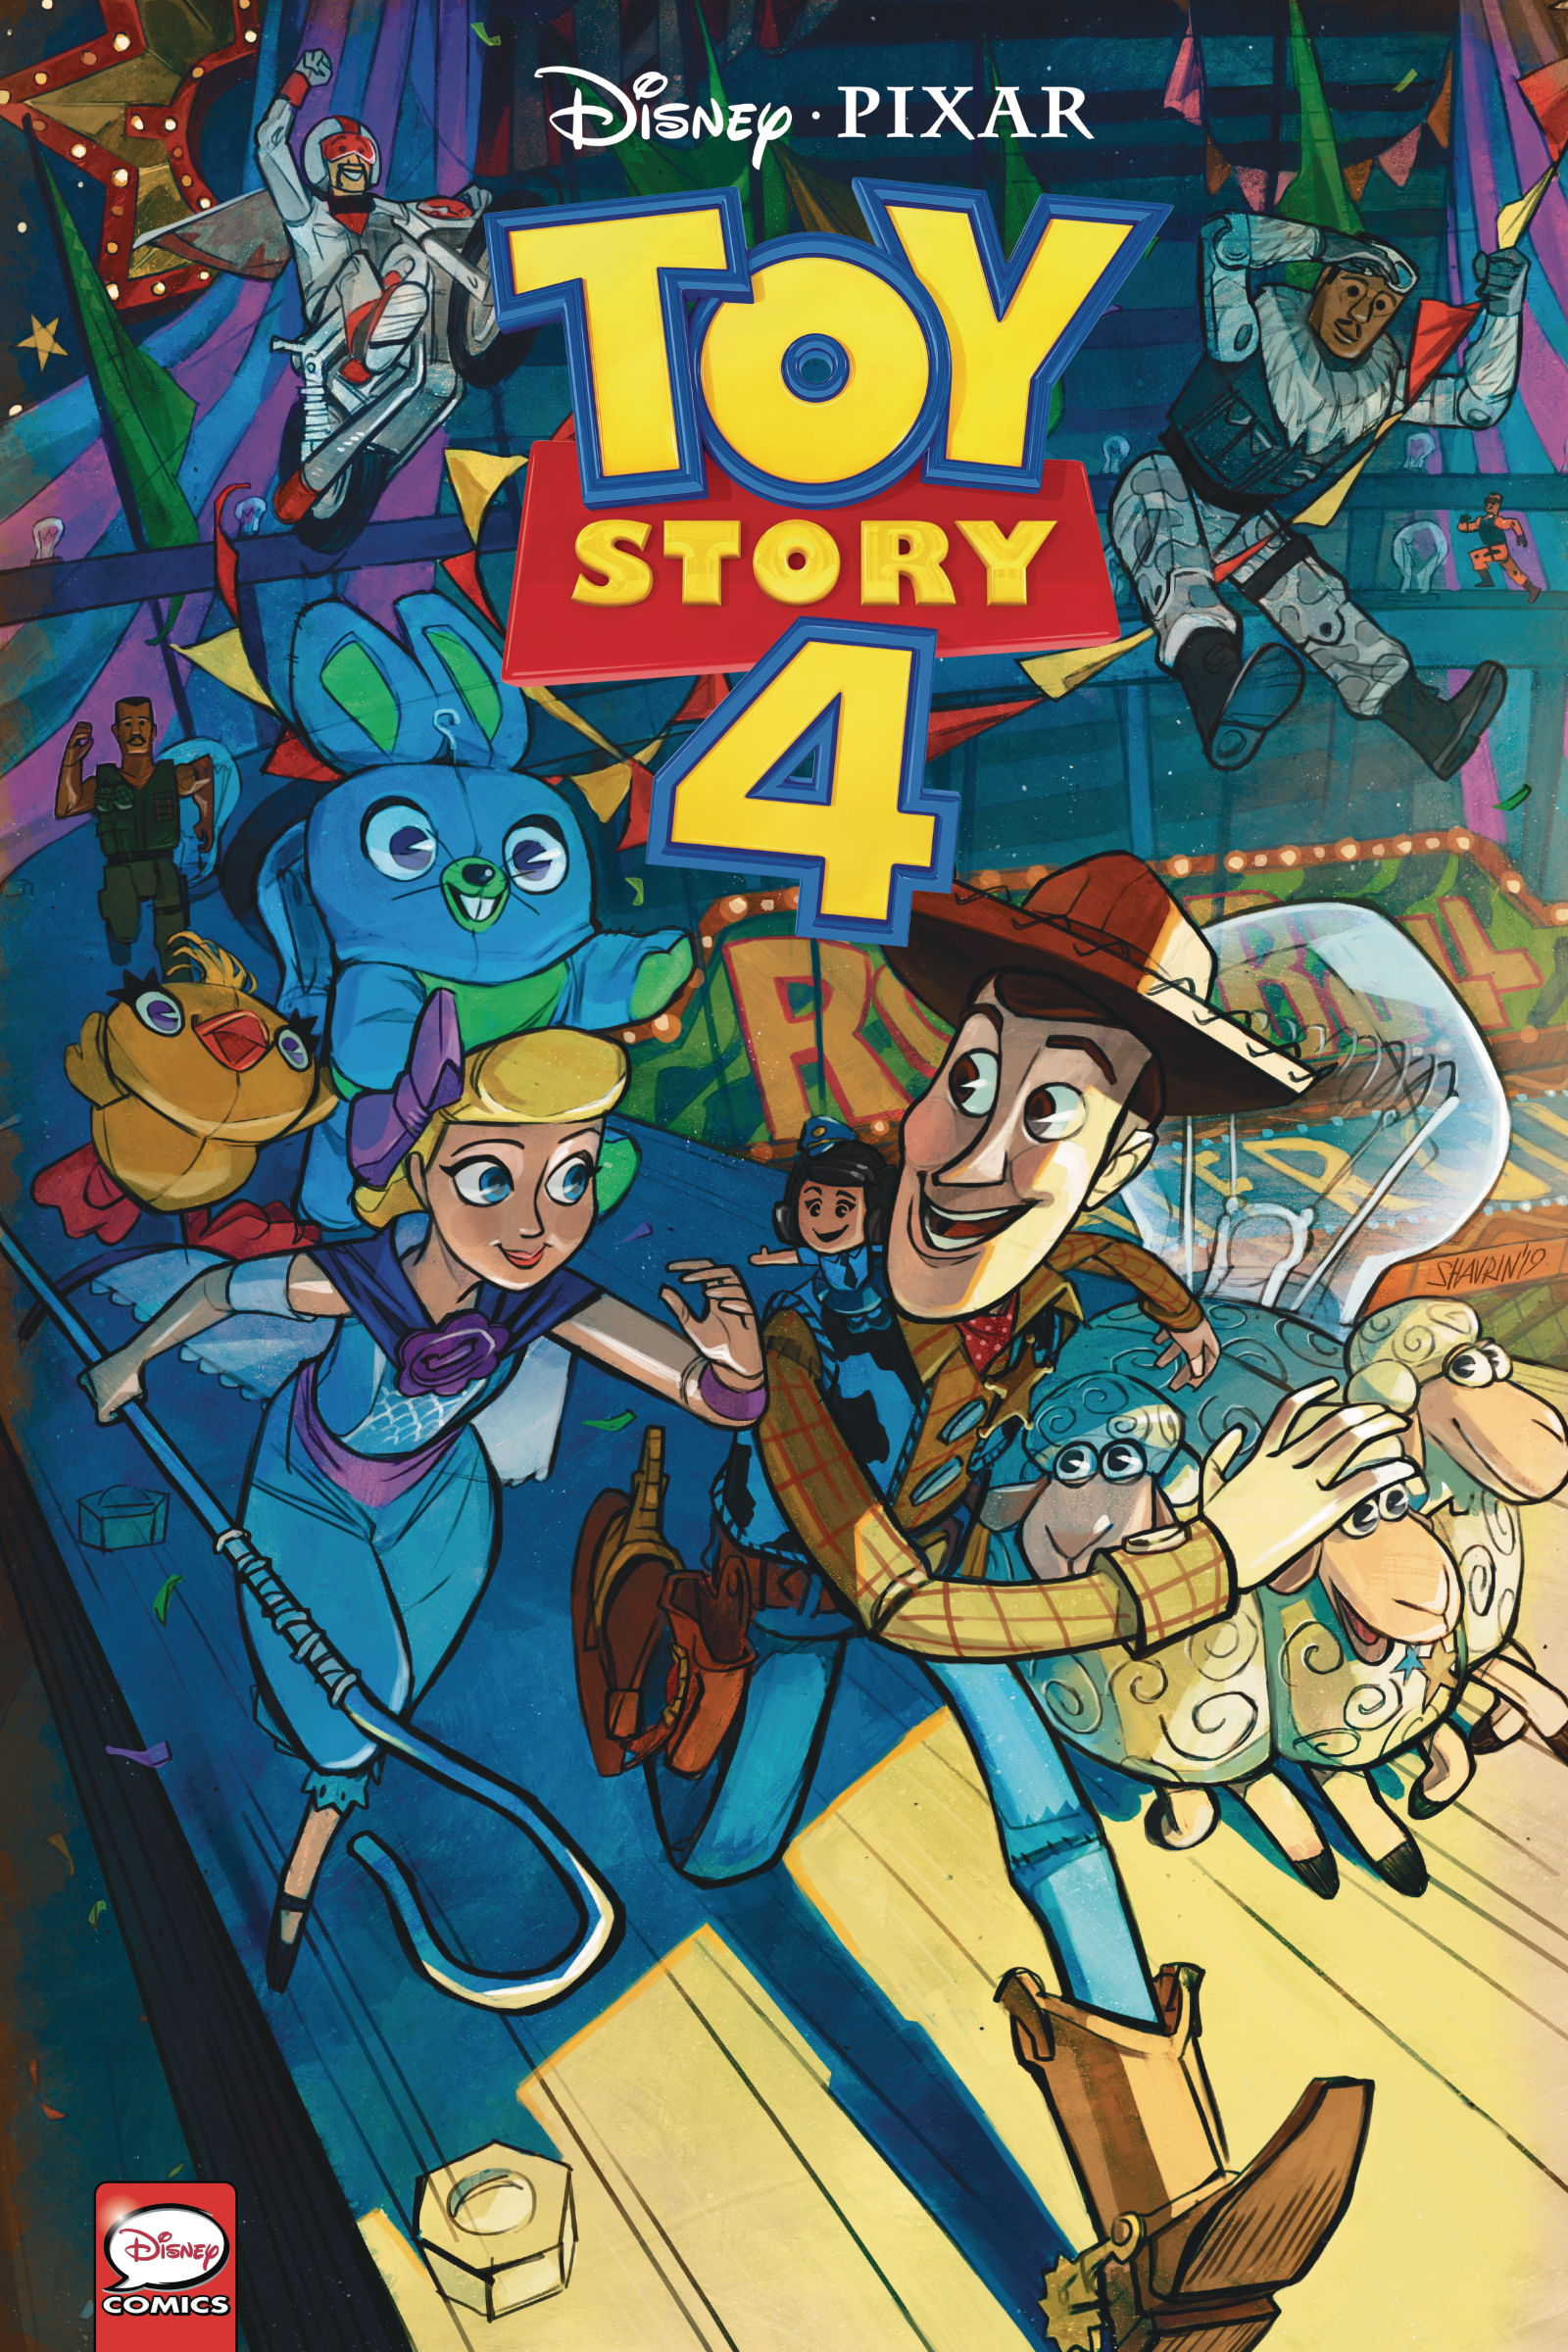 DISNEY PIXAR TOY STORY 4 TP (JAN190481)